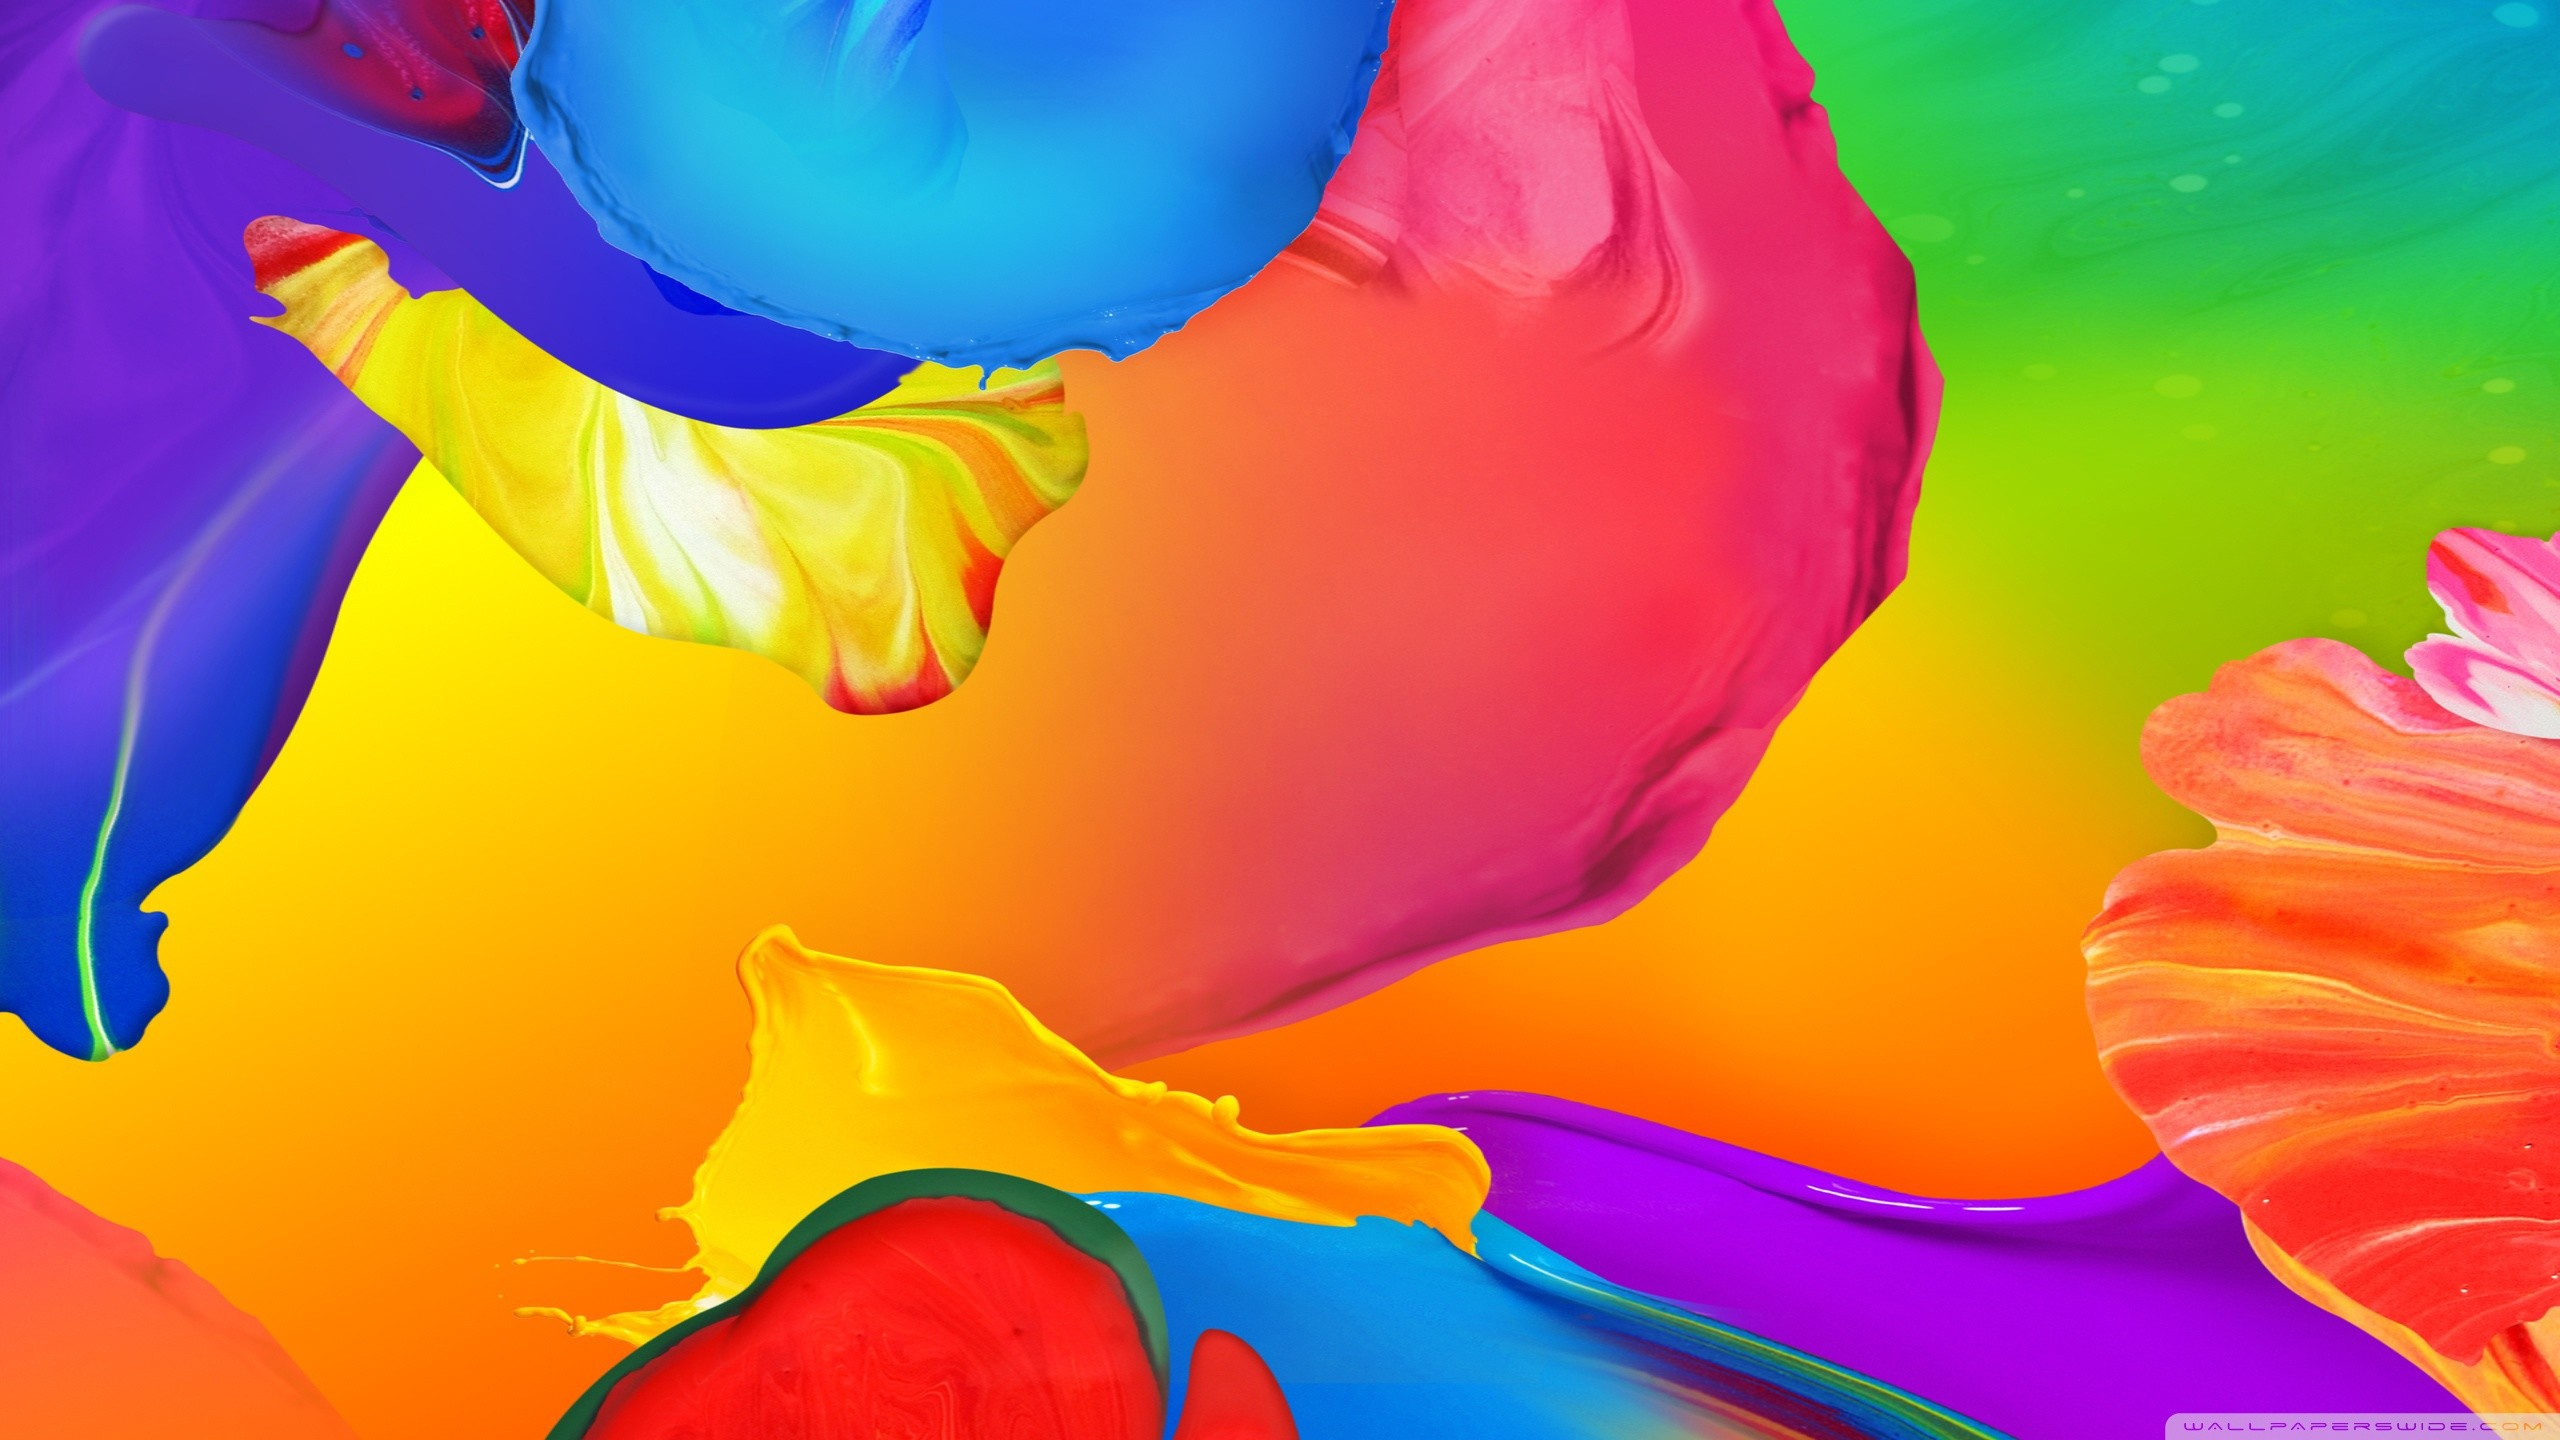 2560x1440, Colorful Abstract Wallpapers Mobile For - Color Paint Background Hd - HD Wallpaper